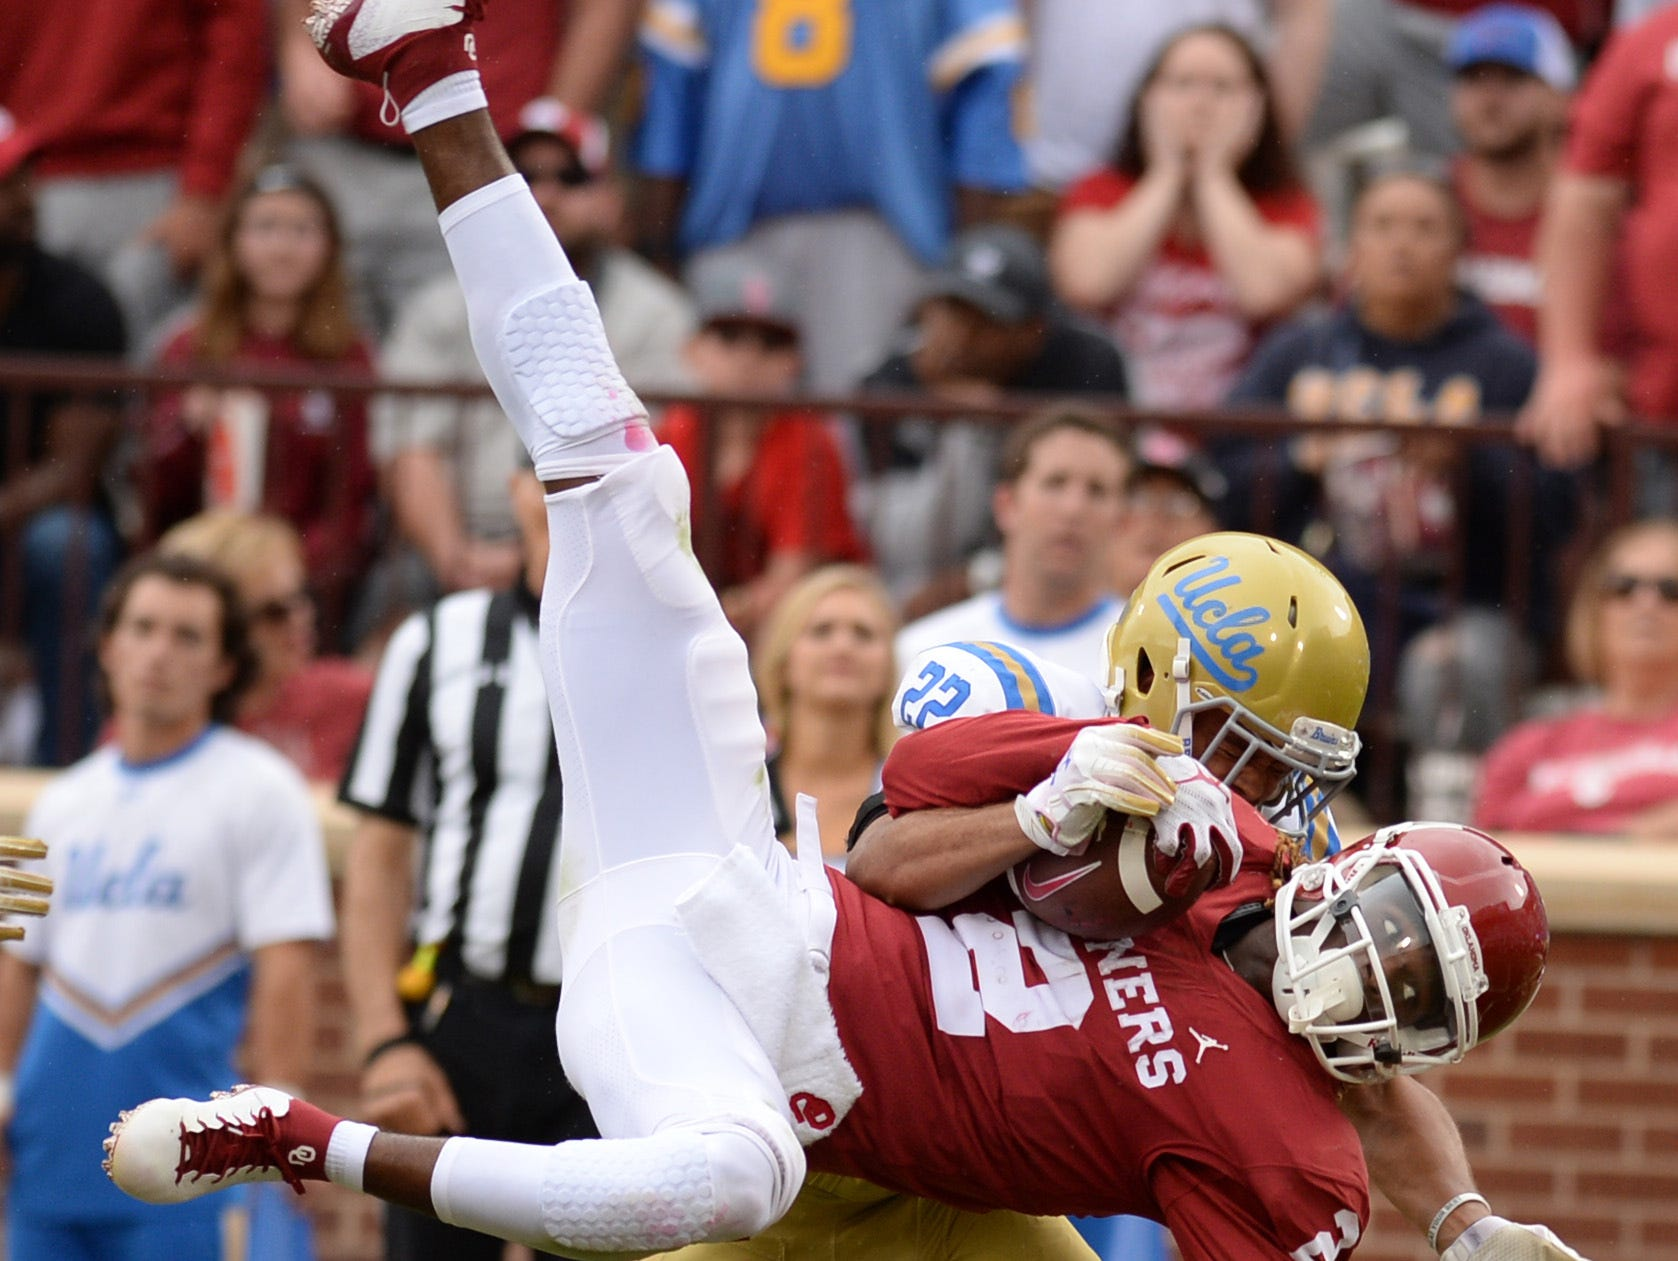 Oklahoma Sooners wide receiver CeeDee Lamb (2) catches a touchdown pass in front of UCLA Bruins defensive back Nate Meadors (22) during the fourth quarter at Gaylord Family - Oklahoma Memorial Stadium.